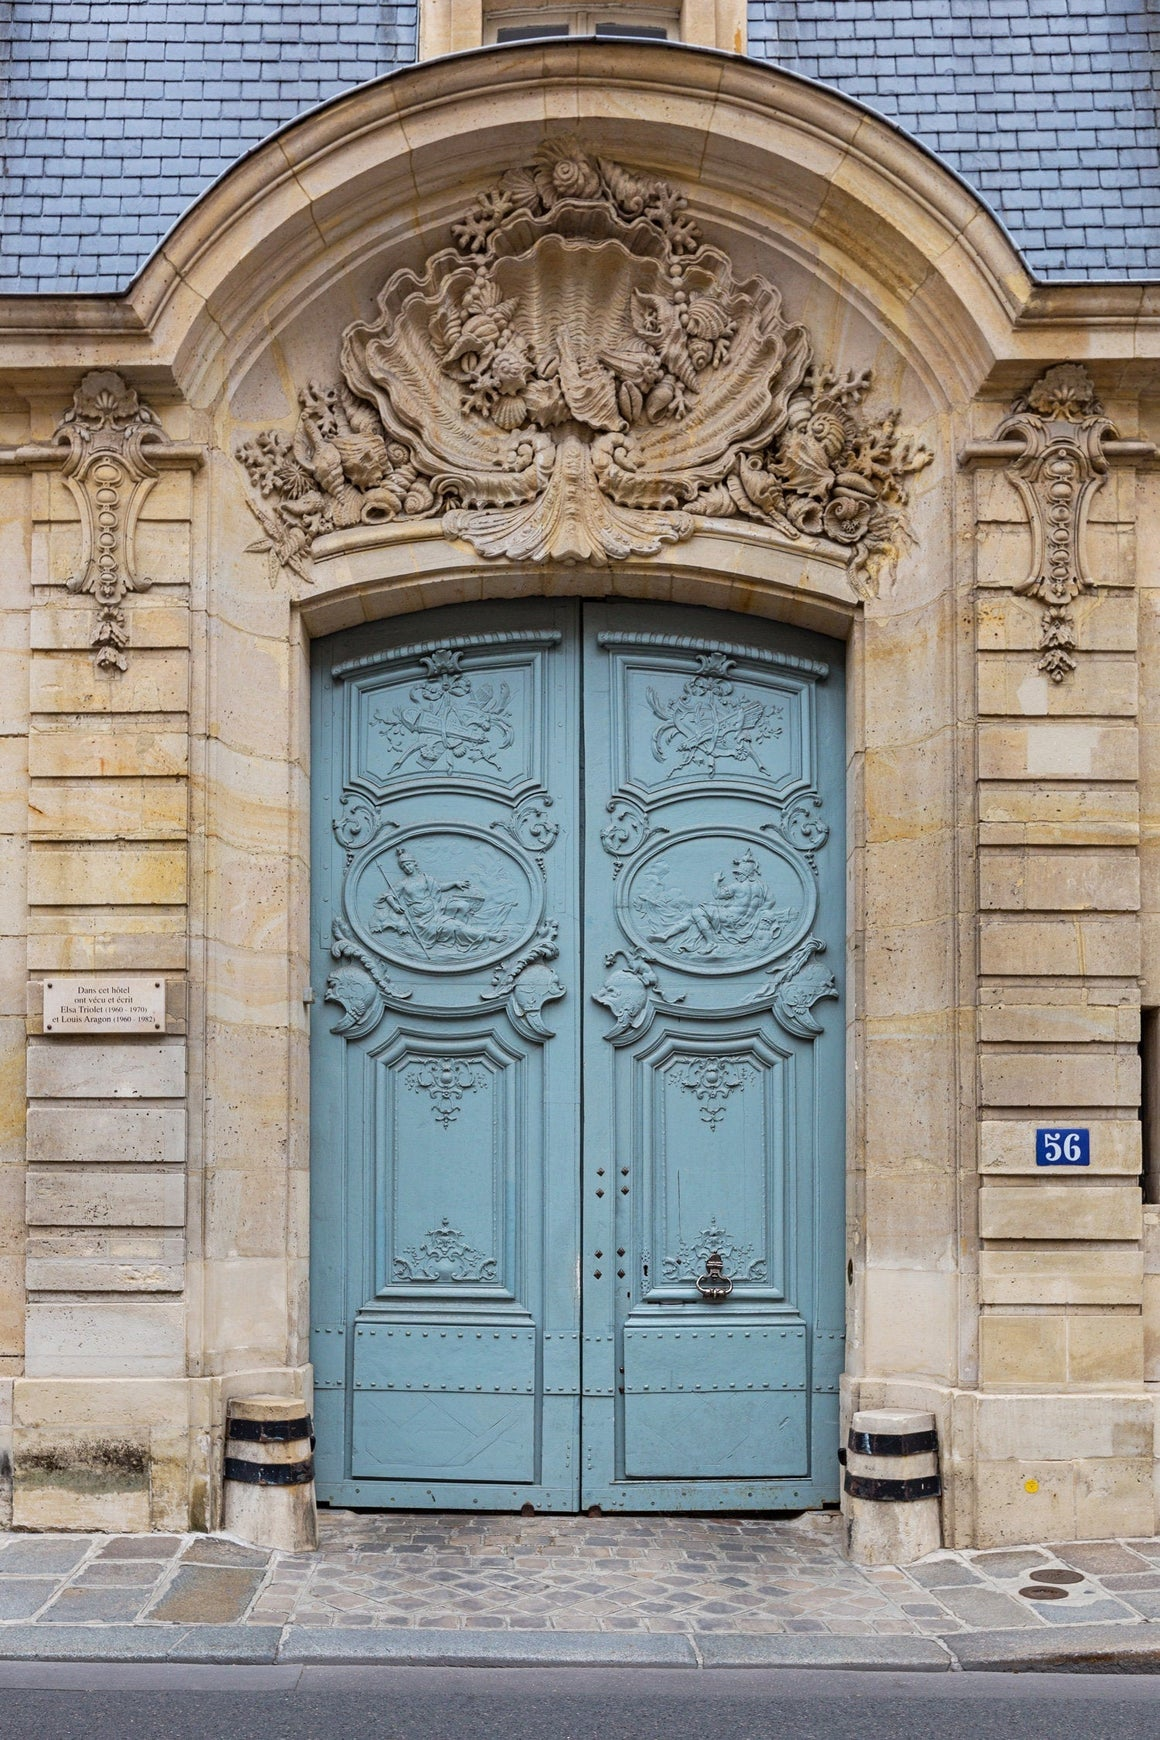 PARIS DOORS - NO. 56